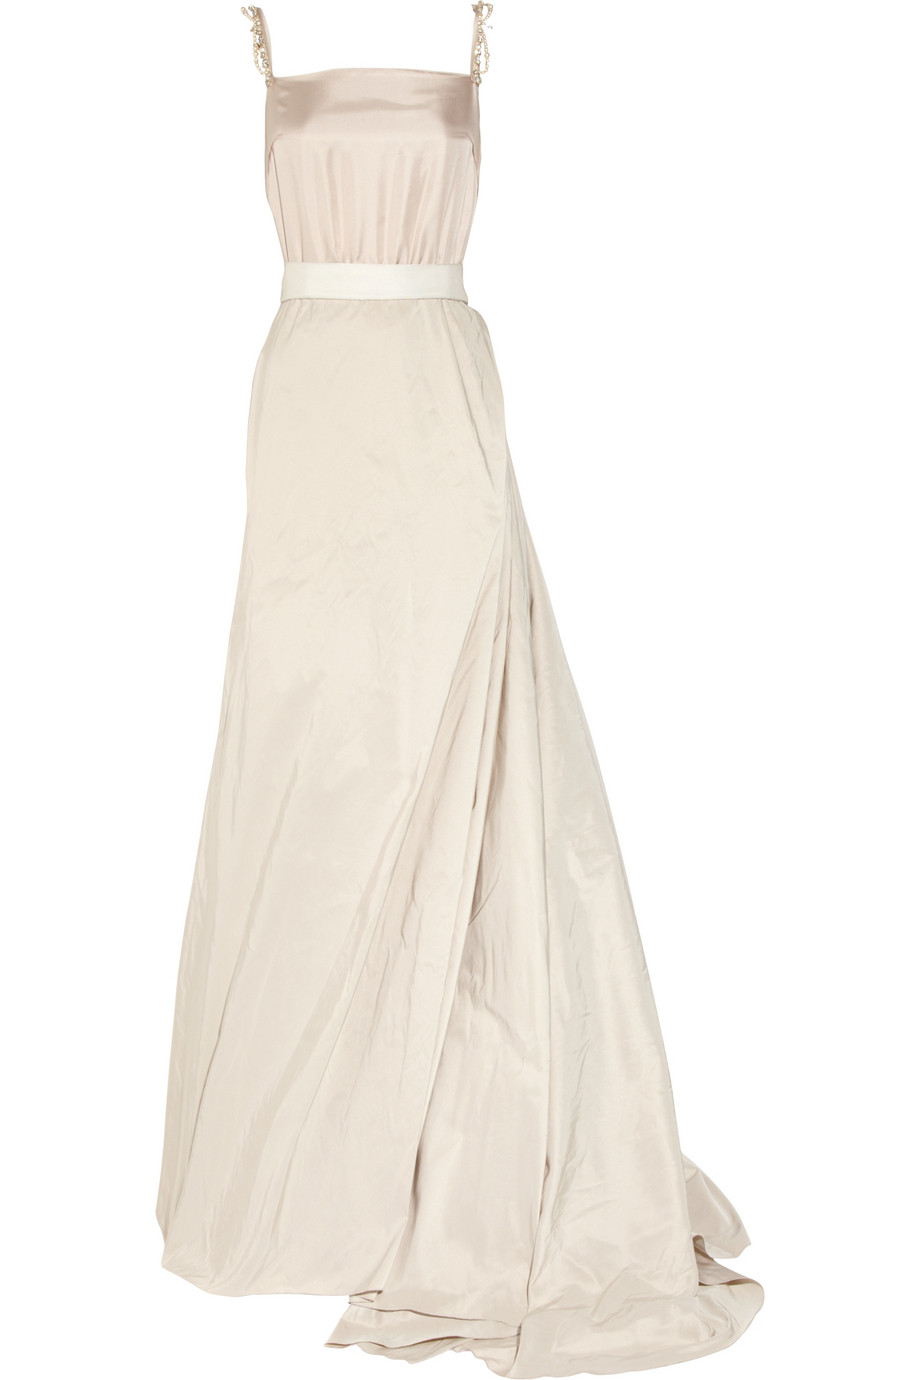 Creamy-lanvin-wedding-dress-square-neck-silk-taffeta.original